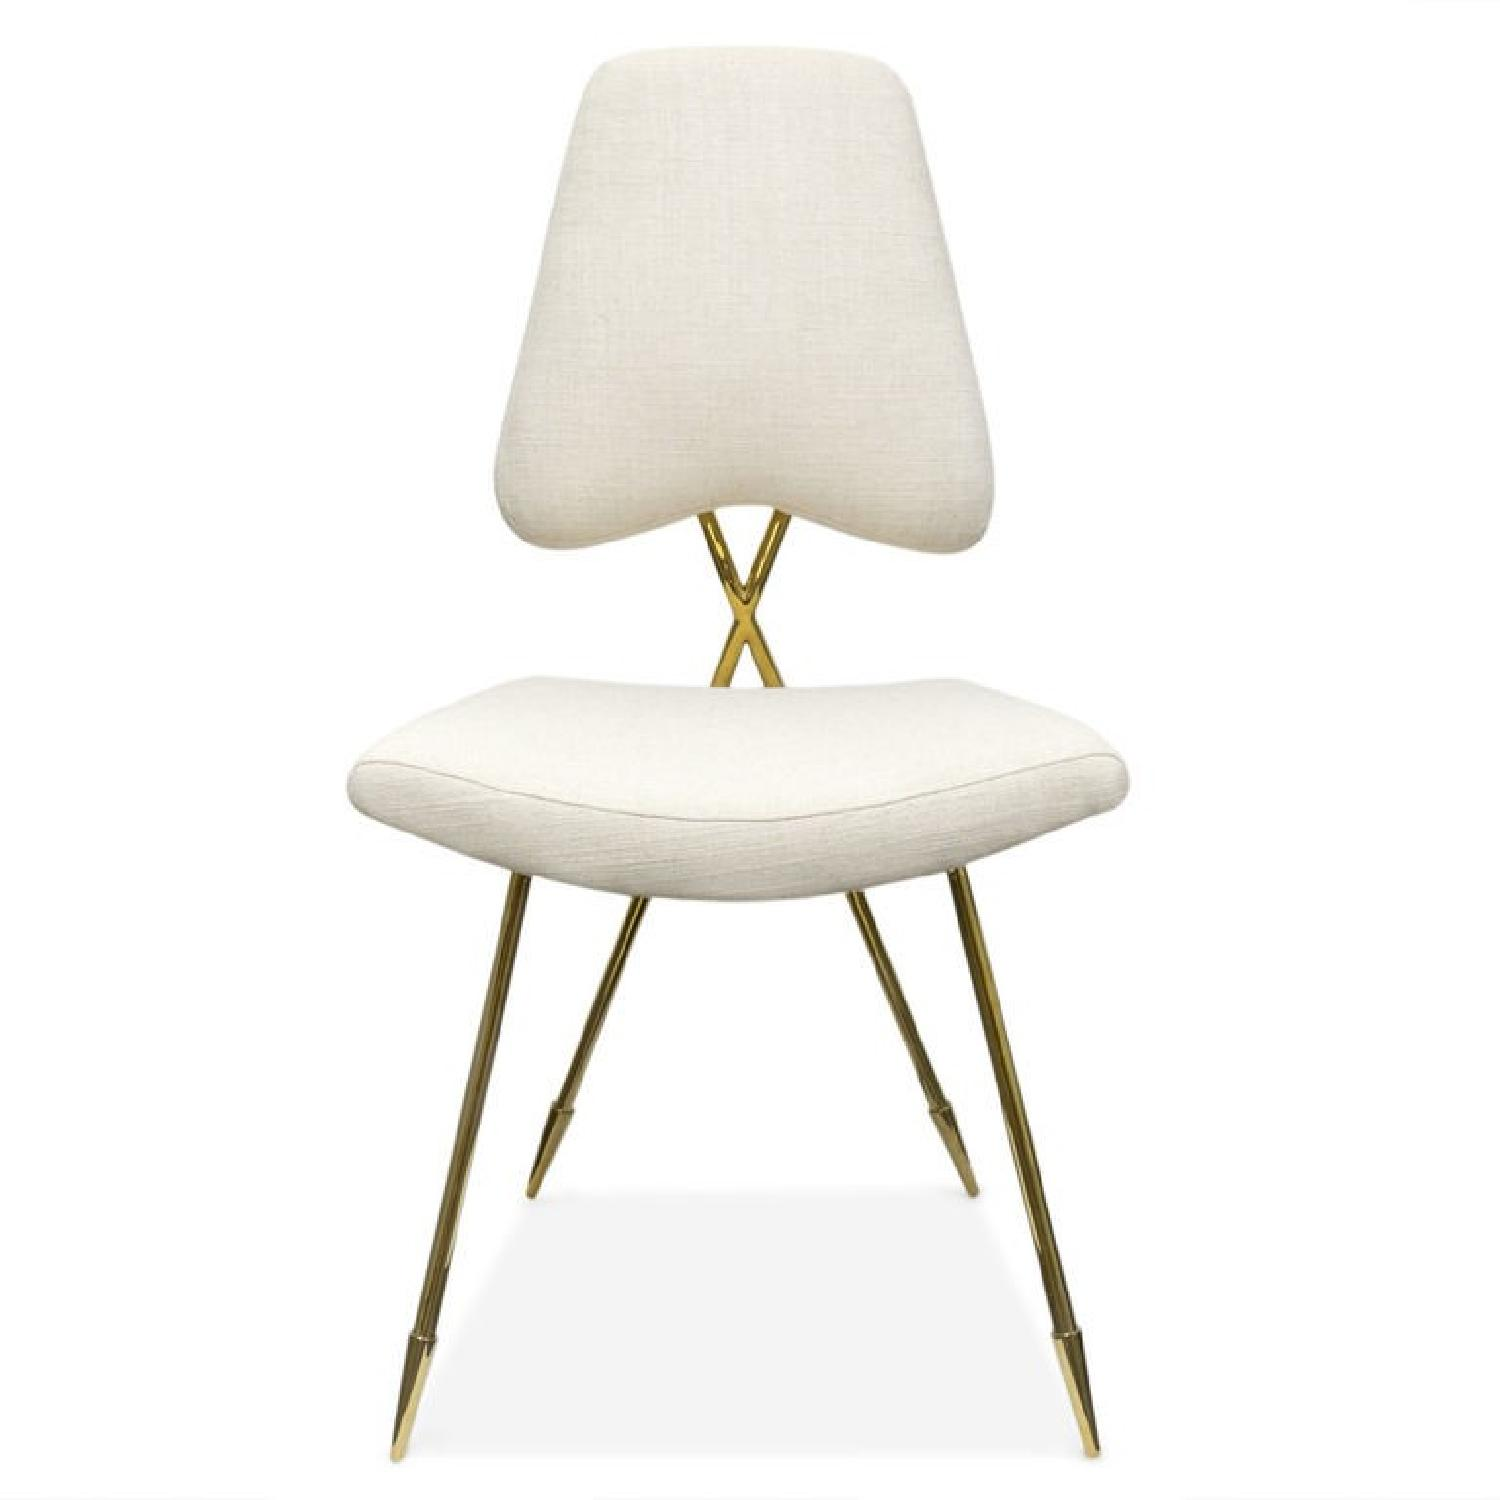 Jonathan Adler Maxime Dining Chairs in Stone Linen